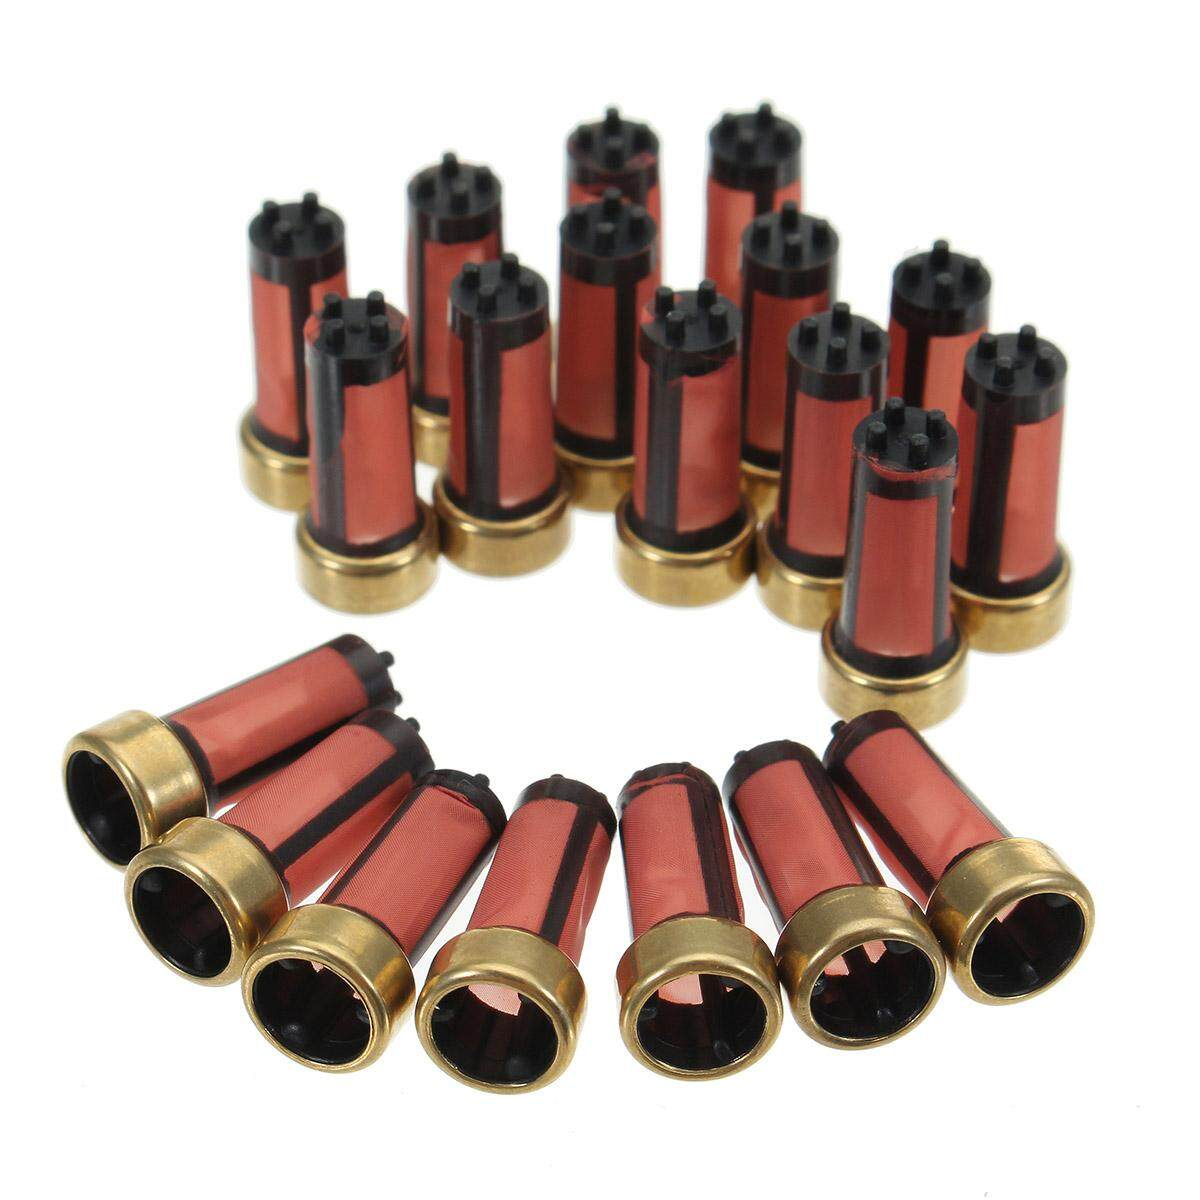 20 Pieces 14*6*3 Mm Mobil Injector Filter Mikro Oem Md619962 By The One..